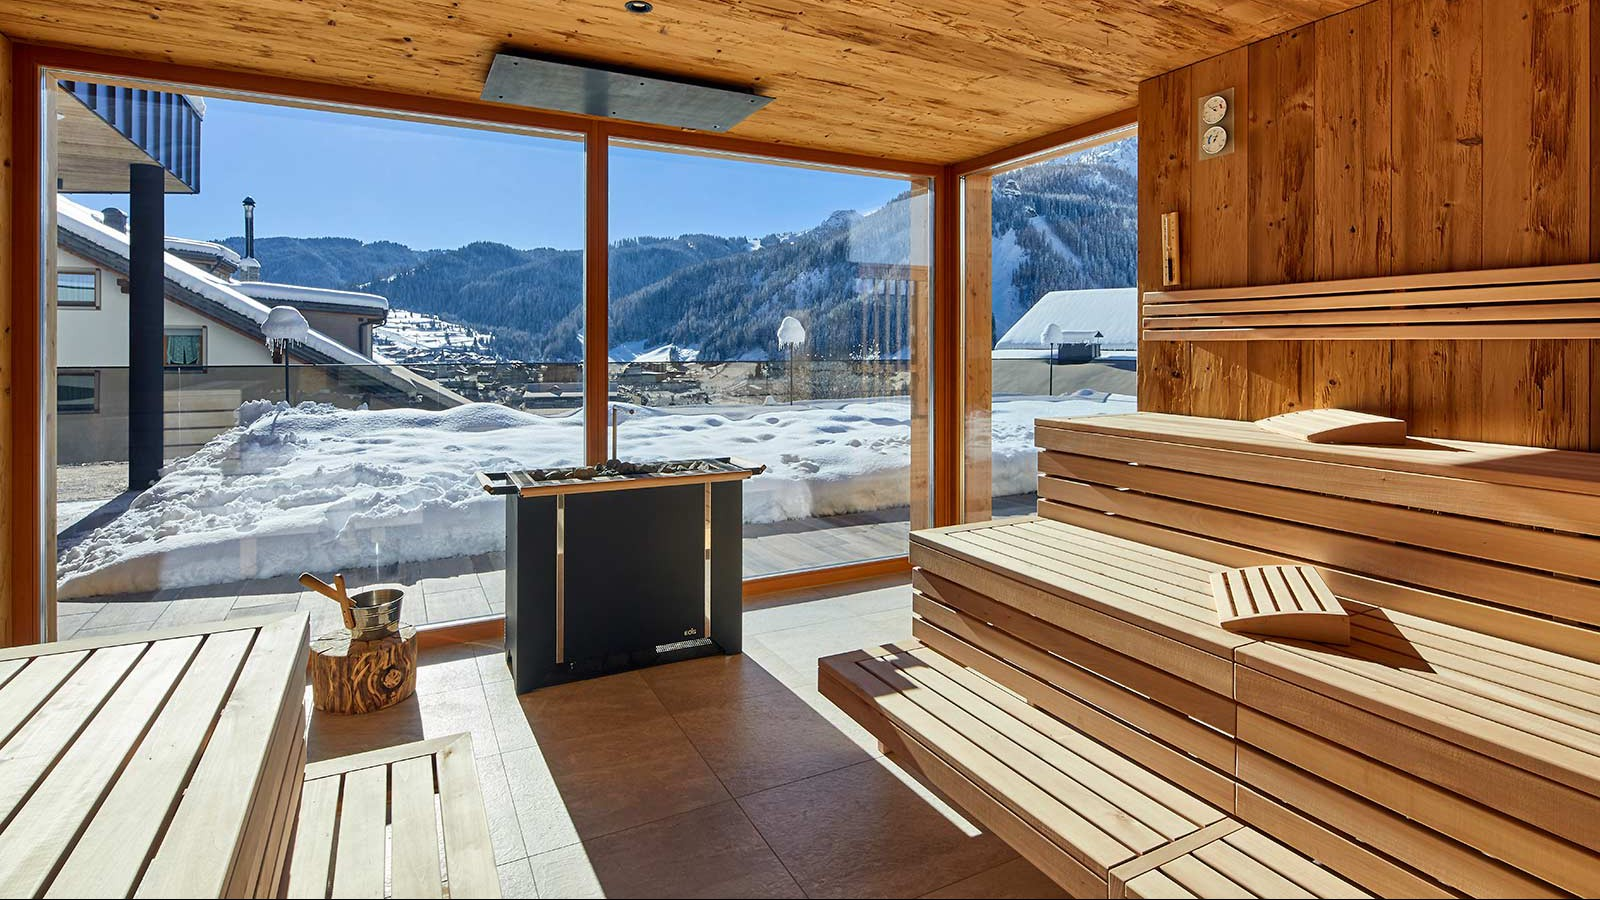 Hotel Sassongher, Corvara and Colfosco - Sauna